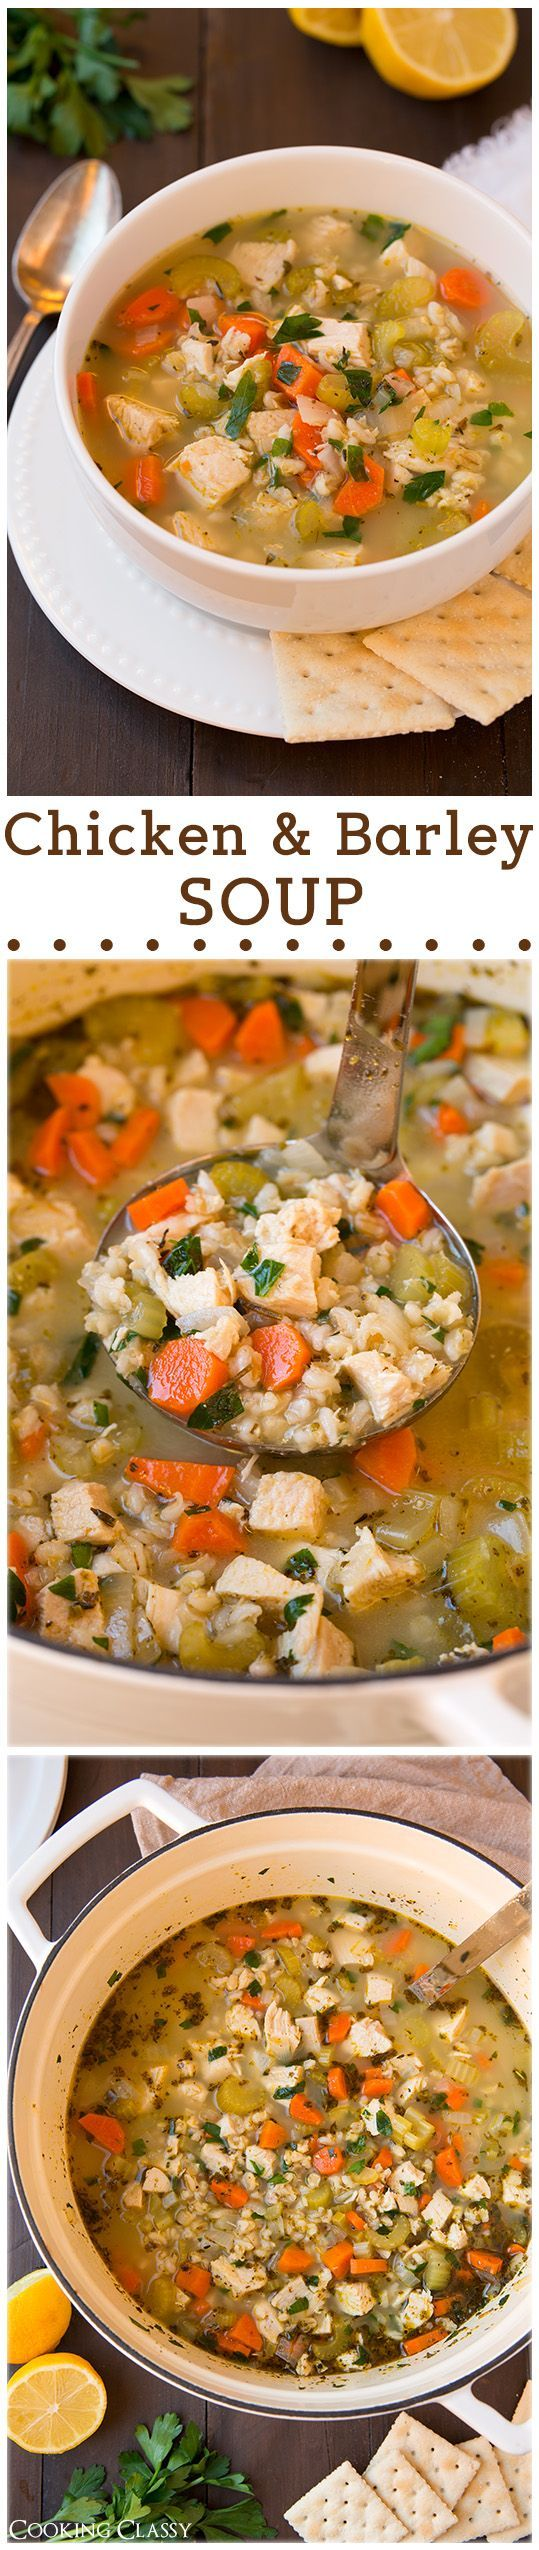 Chicken and Barley Soup - healthier than the traditional egg noodle chicken noodle but equally as good. LOVED this soup!